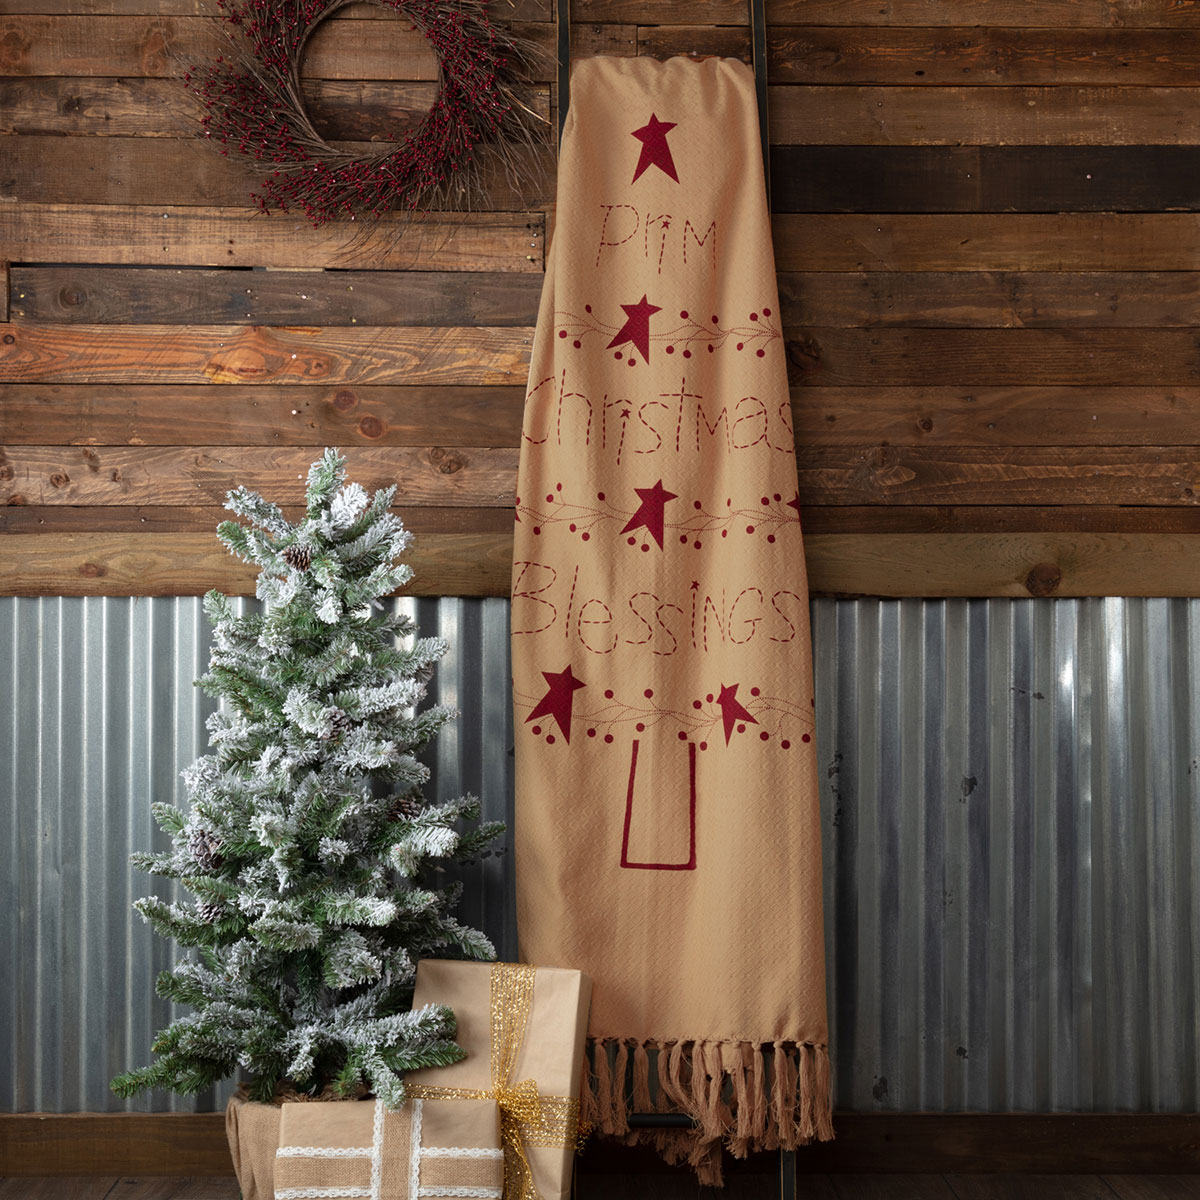 Prim Christmas Blessings Woven Throw at The Weed Patch